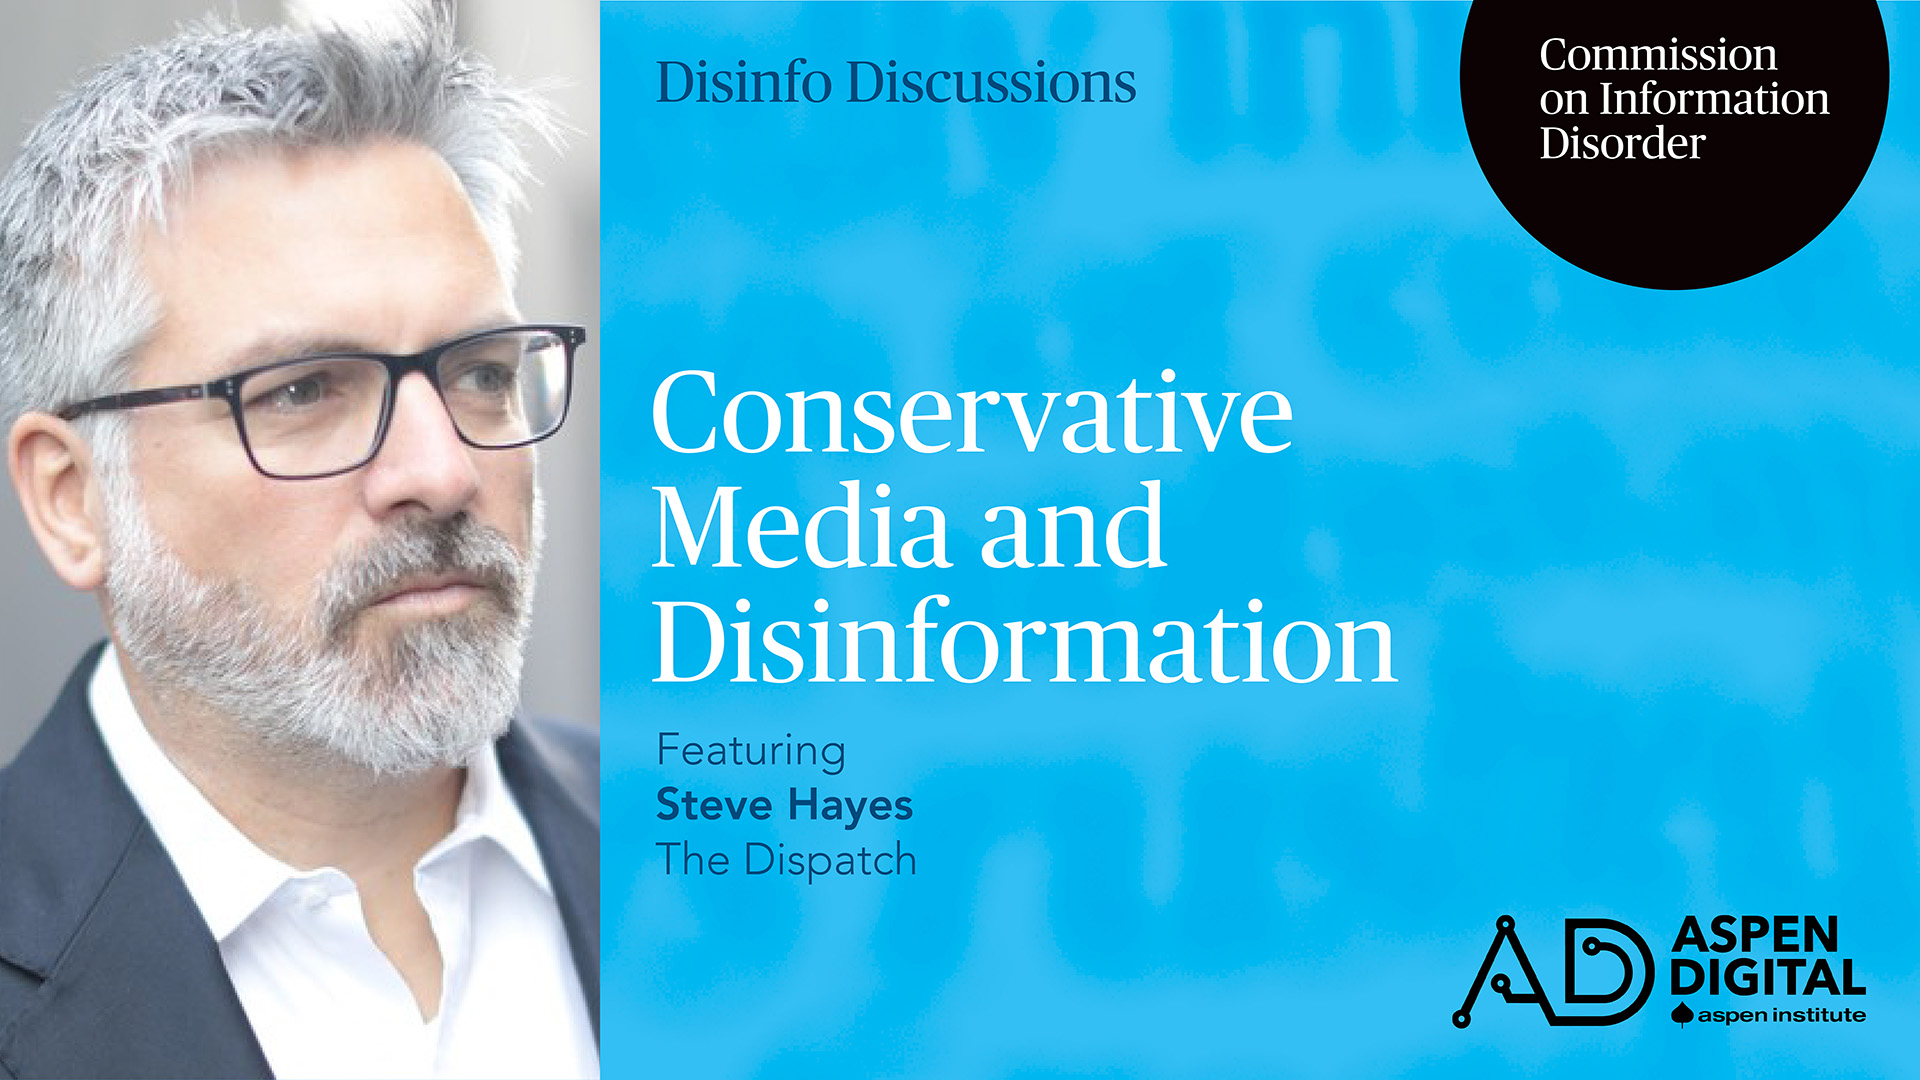 Conservative Media and Disinformation